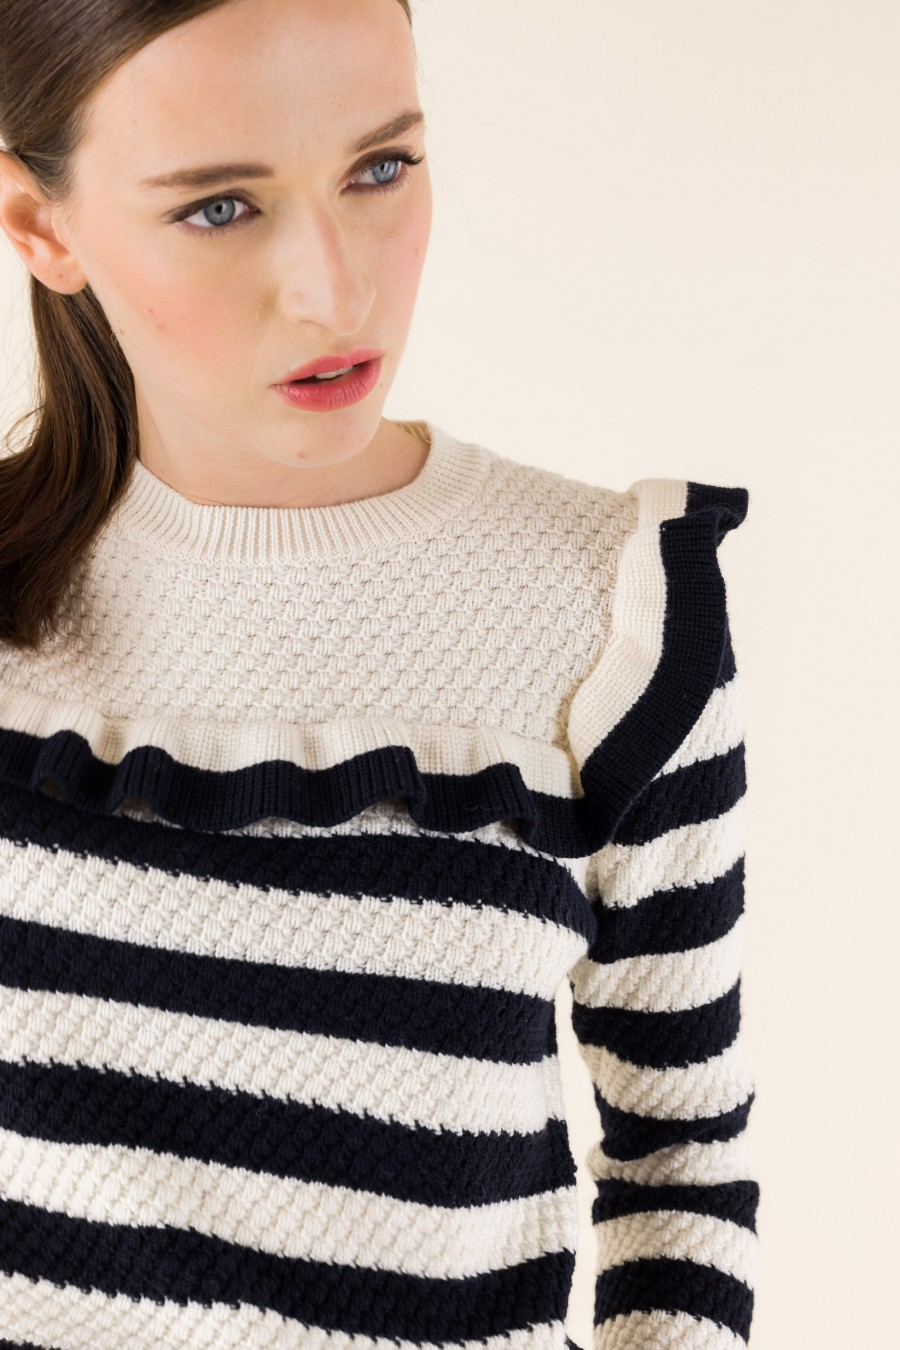 Black and white striped jumper